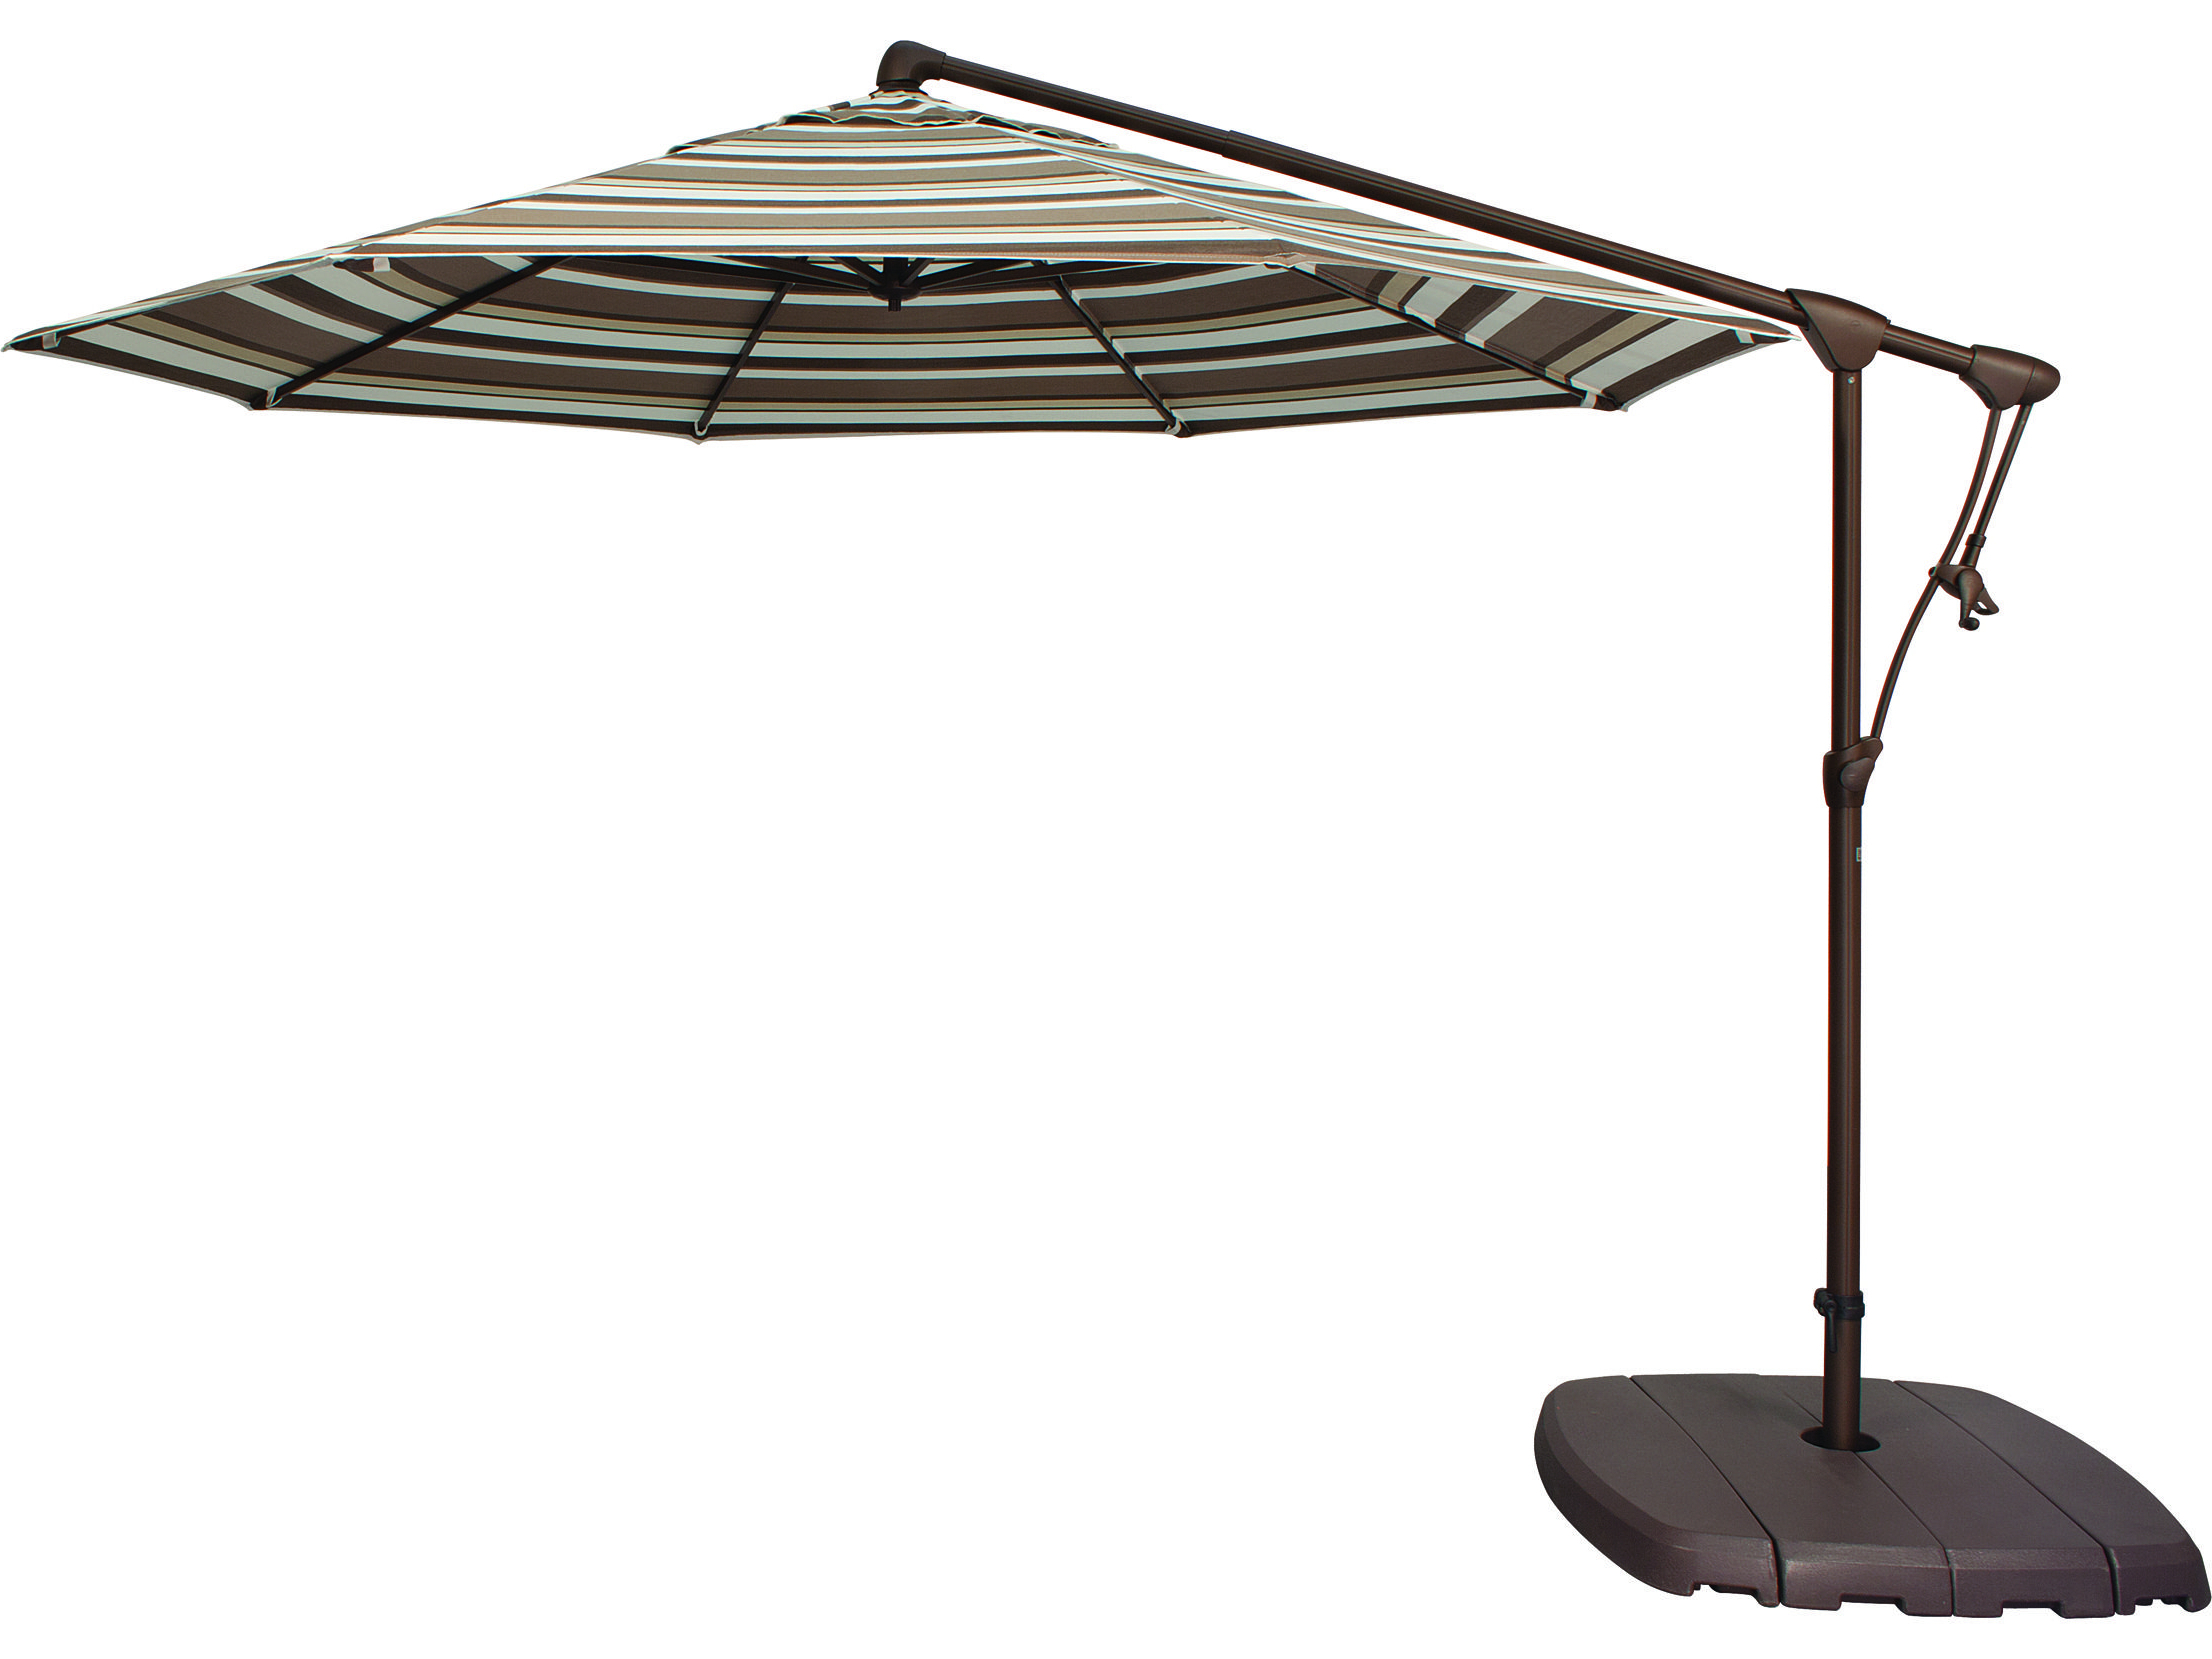 Most Recent Treasure Garden Cantilever Ag19 Aluminum 10' Octagon Tilt & Lock Pertaining To Carlisle Cantilever Sunbrella Umbrellas (View 9 of 20)